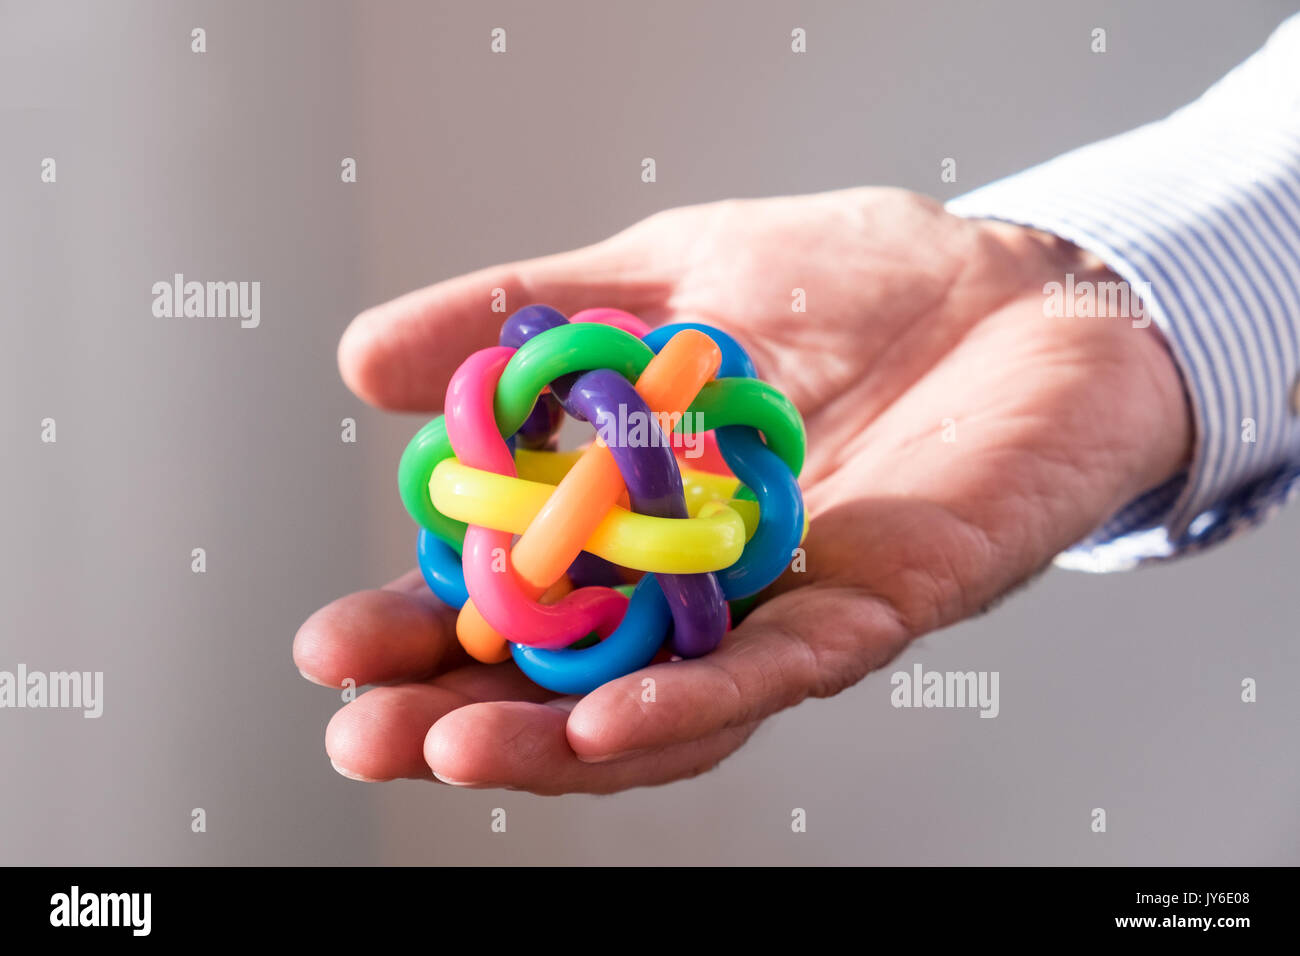 Hand holding out  ball made of different colors - Stock Image